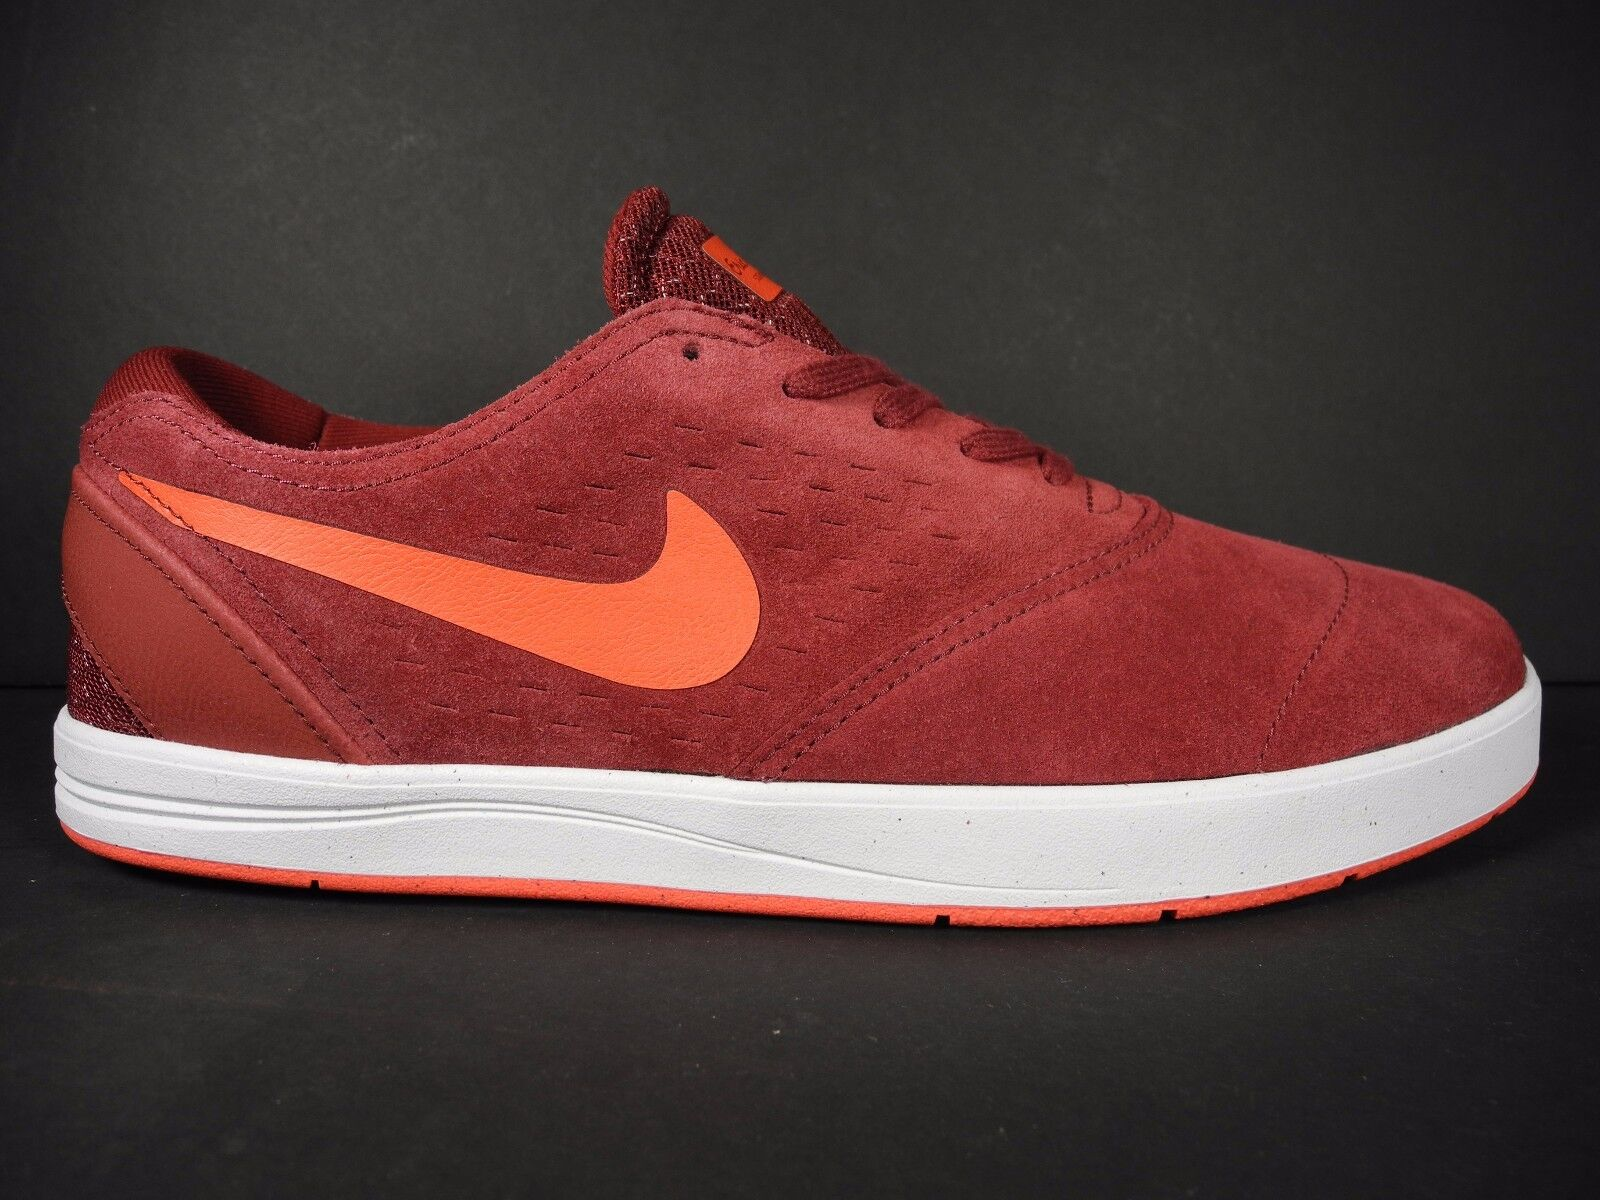 NEW NIKE ERIC KOSTON 2 Men's Training Skate Skateboarding Shoes Size US 11.5